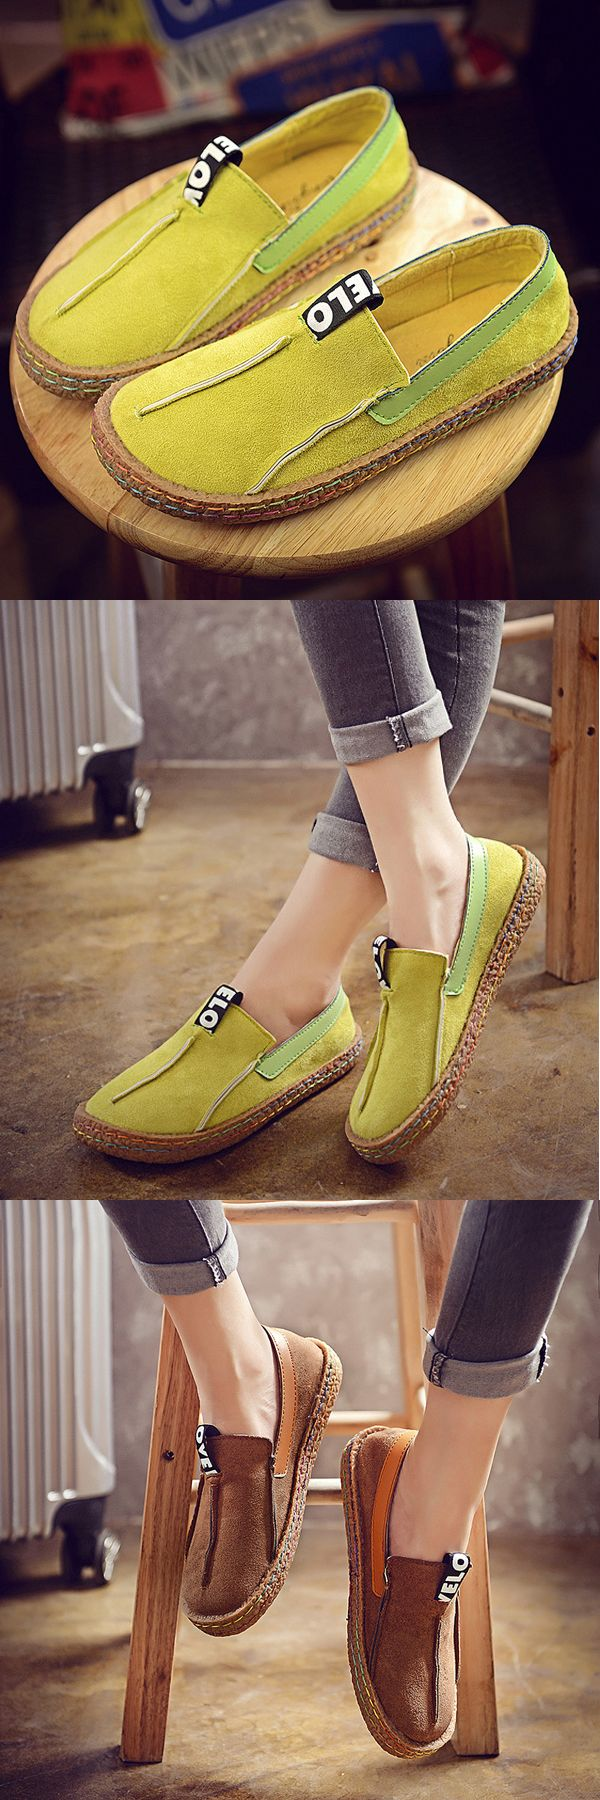 US$22.69 + Free shipping. Casual Soft Sole Flat Loafers, women flat,women casual flats,women loafers.